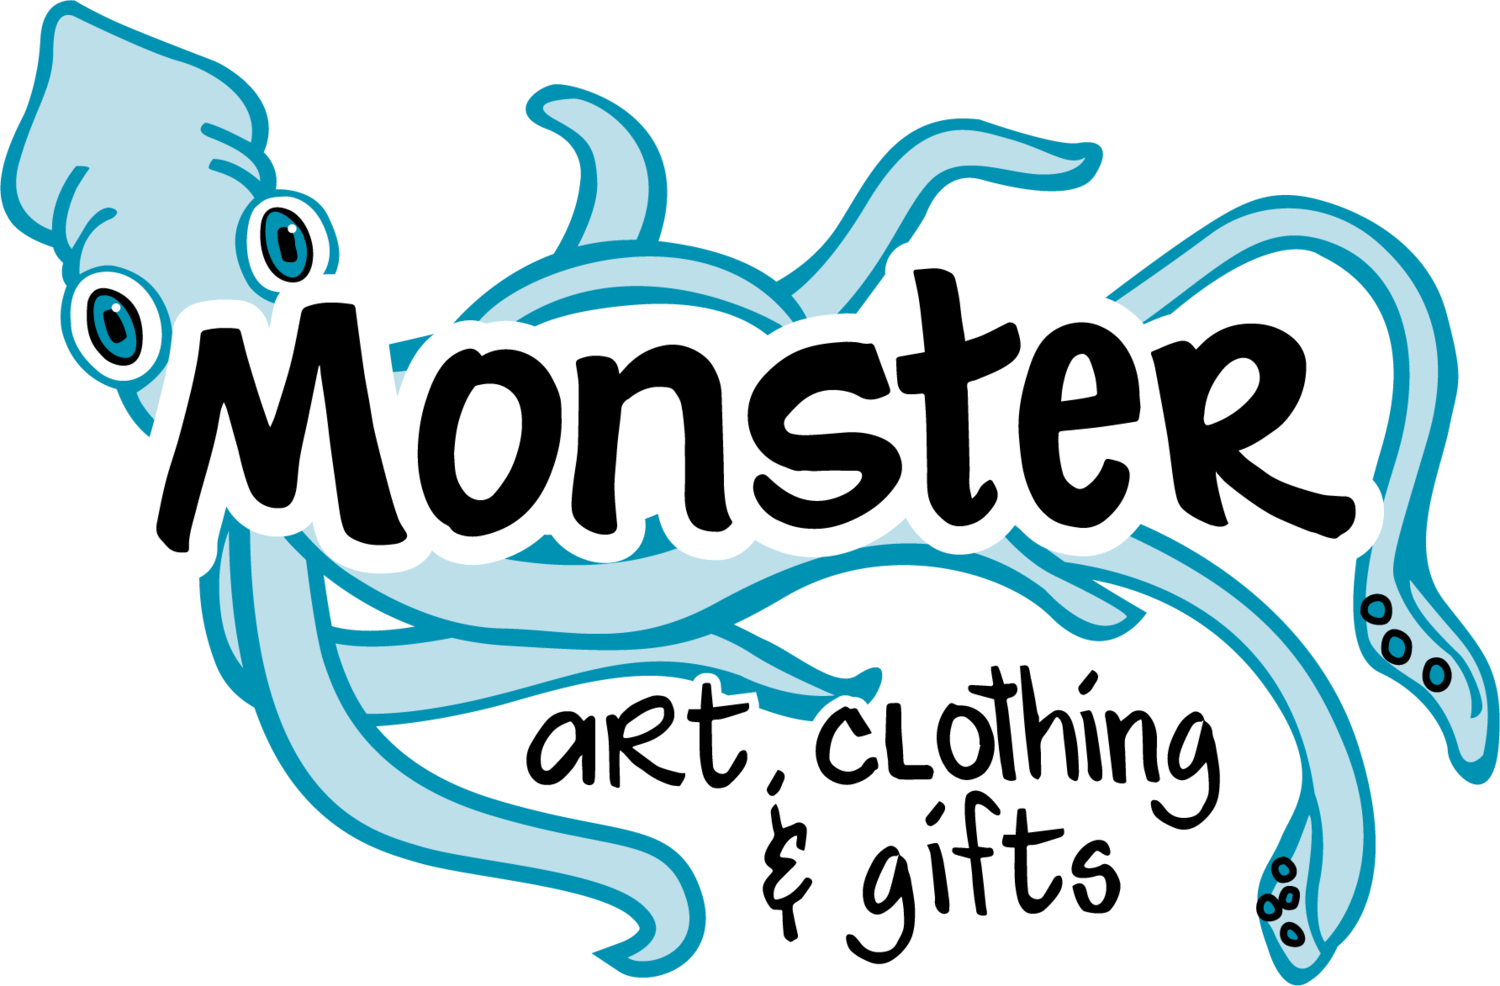 Monster: Art, Clothing & Gifts